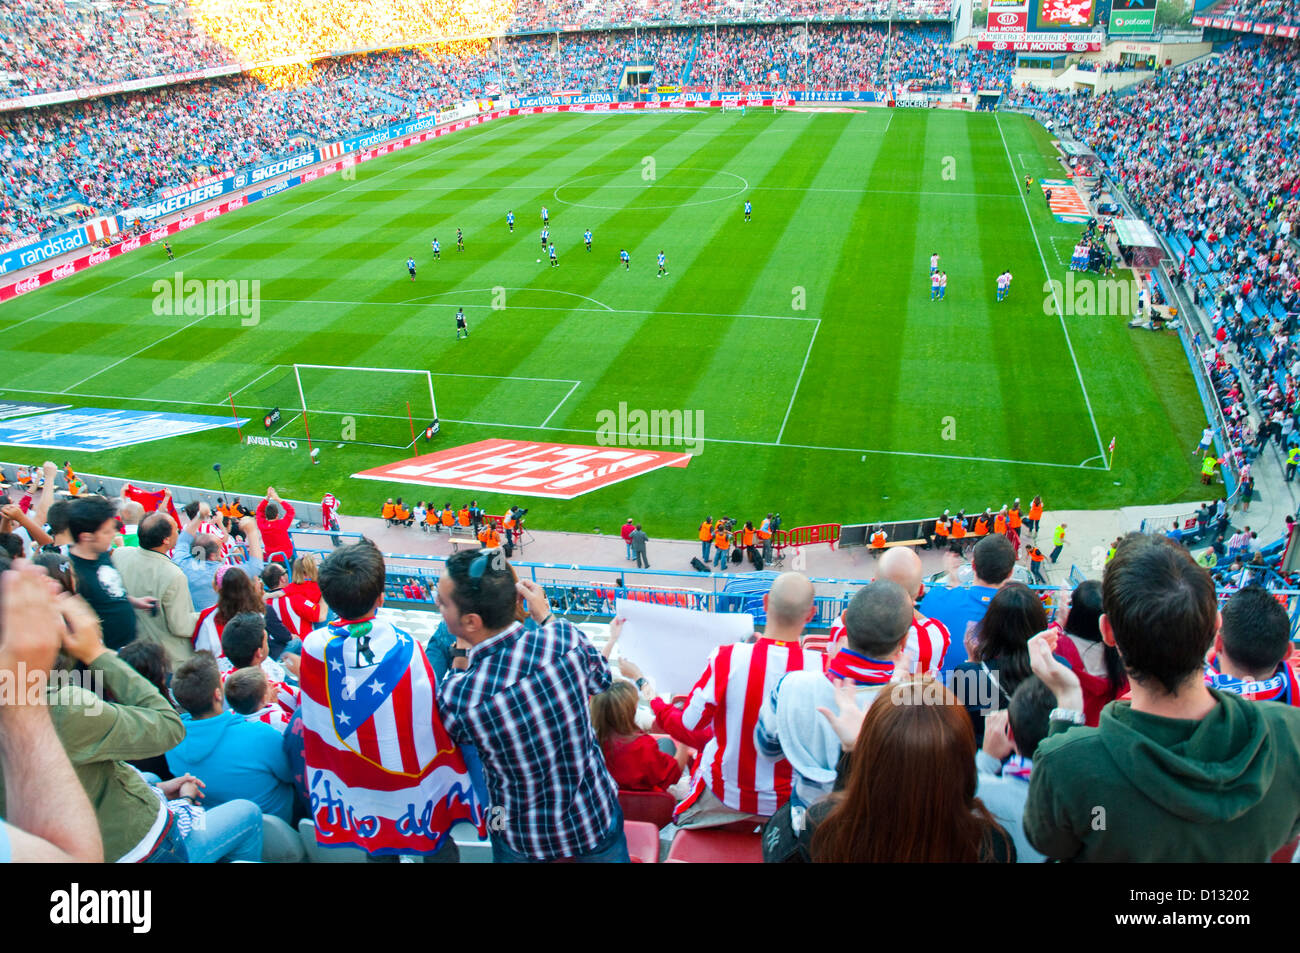 People in Vicente Calderon stadium, during a football match. Madrid, Spain. - Stock Image